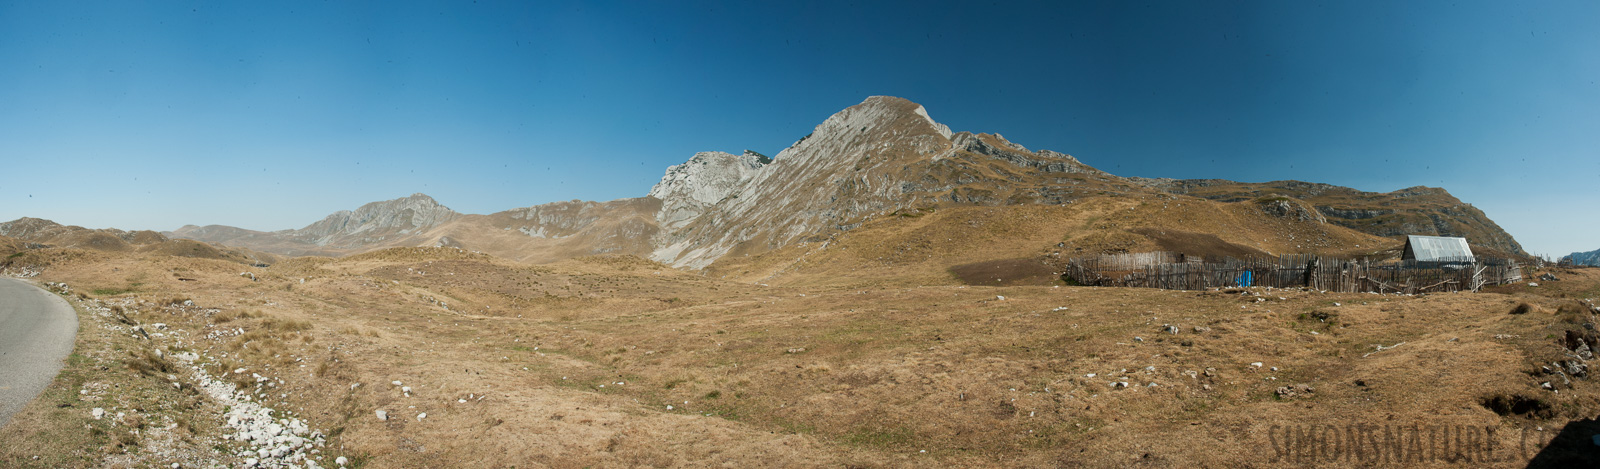 Montenegro - In the region of the Durmitor massif [28 mm, 1/100 sec at f / 20, ISO 400]